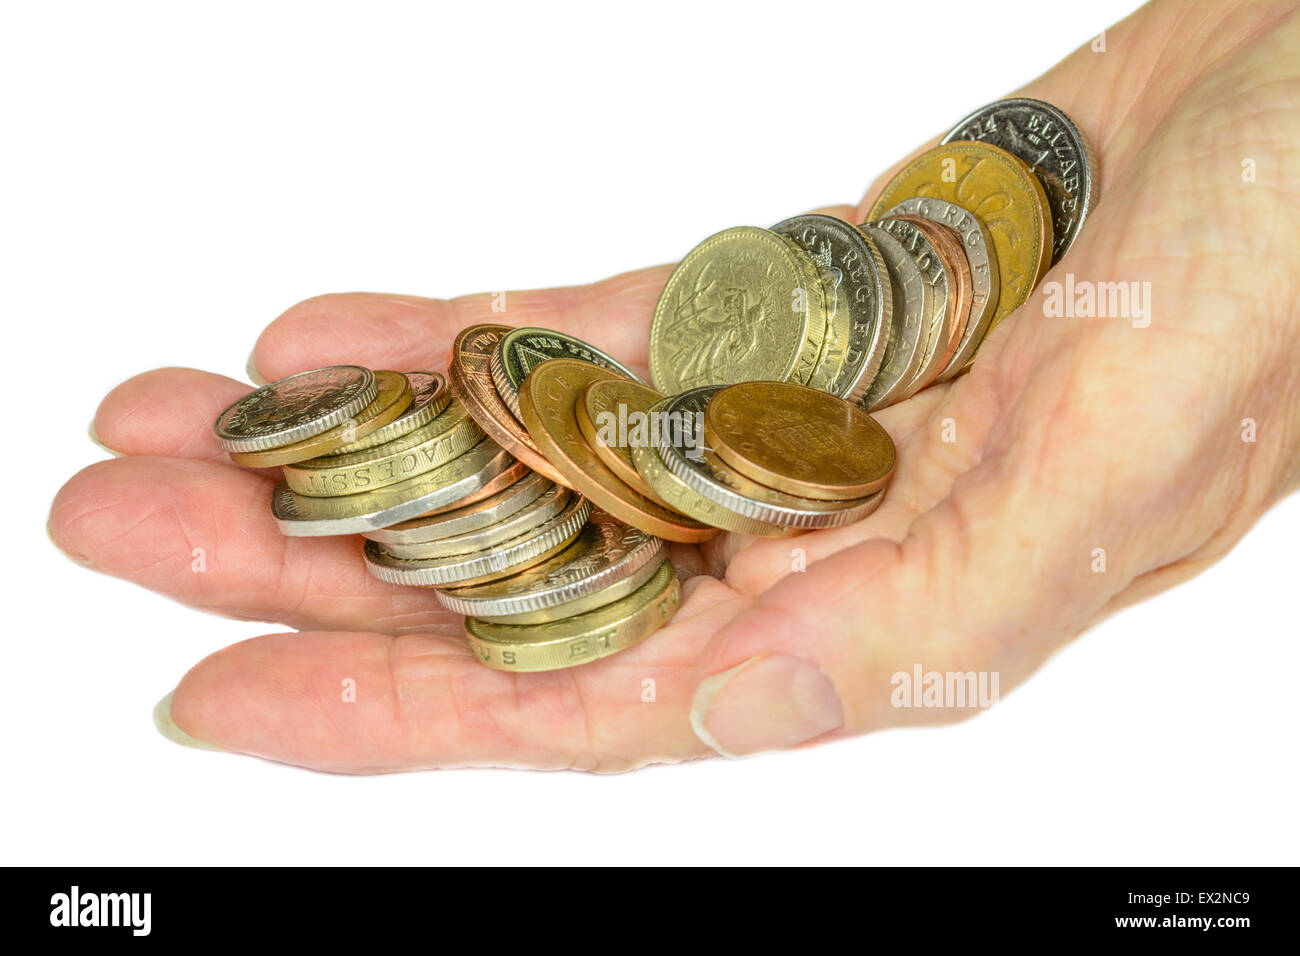 Woman's hand holding UK decimal sterling coins on a white background. Stock Photo